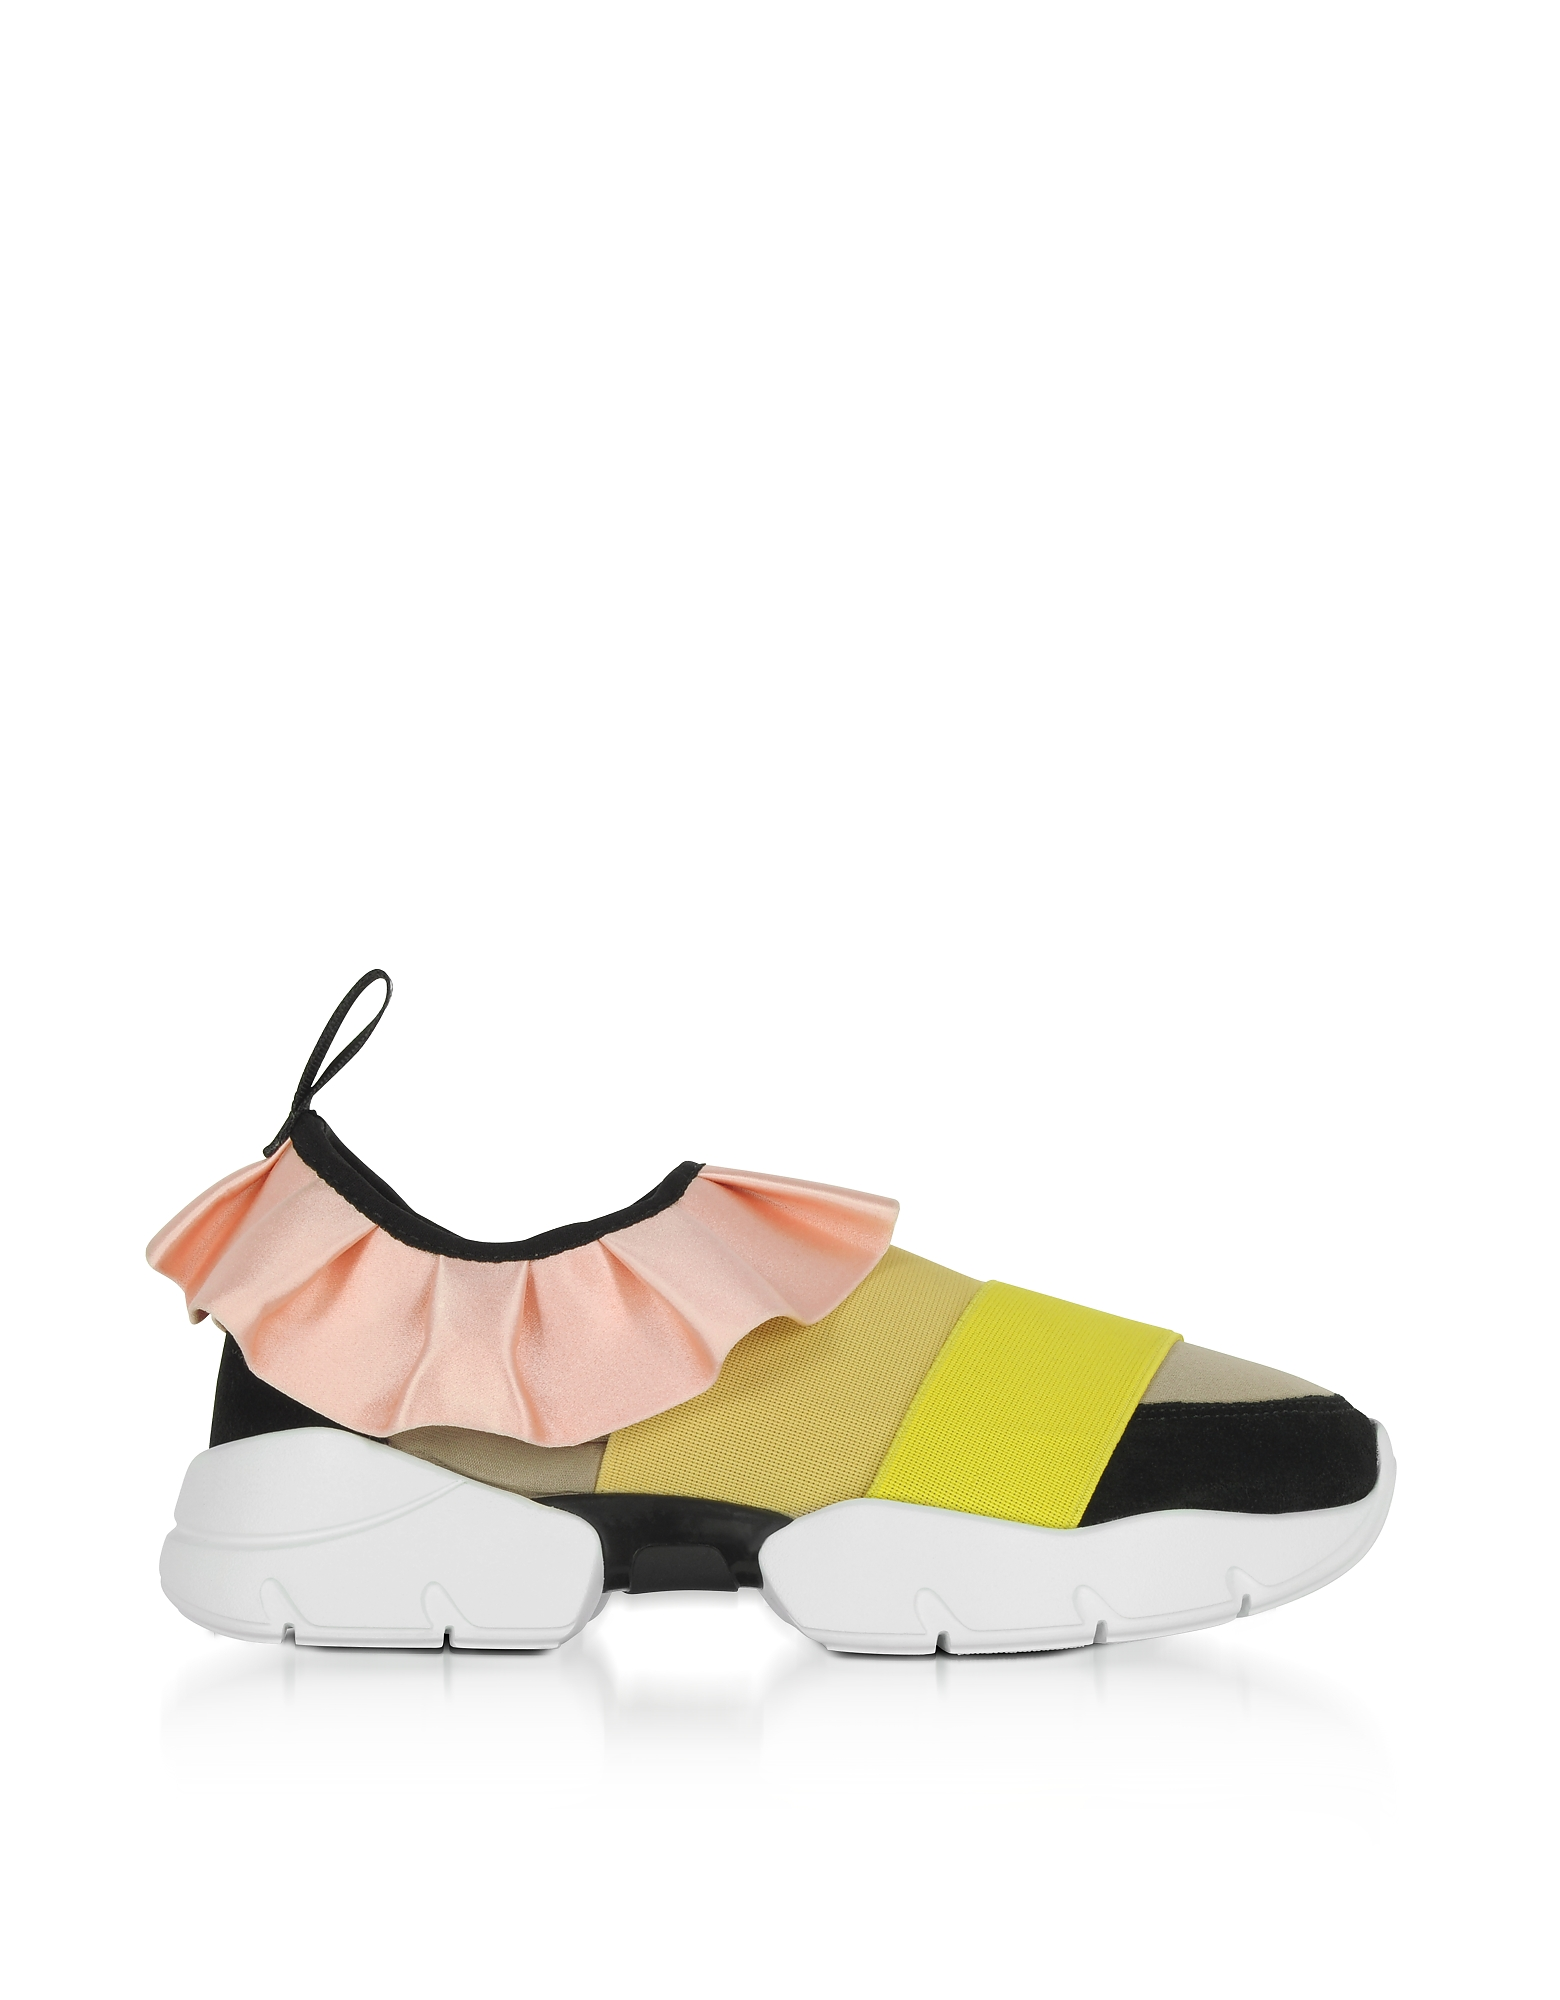 Emilio Pucci Shoes, Multi Pink/Mustard Tech Fabric and Silk Ruffle Sneakers